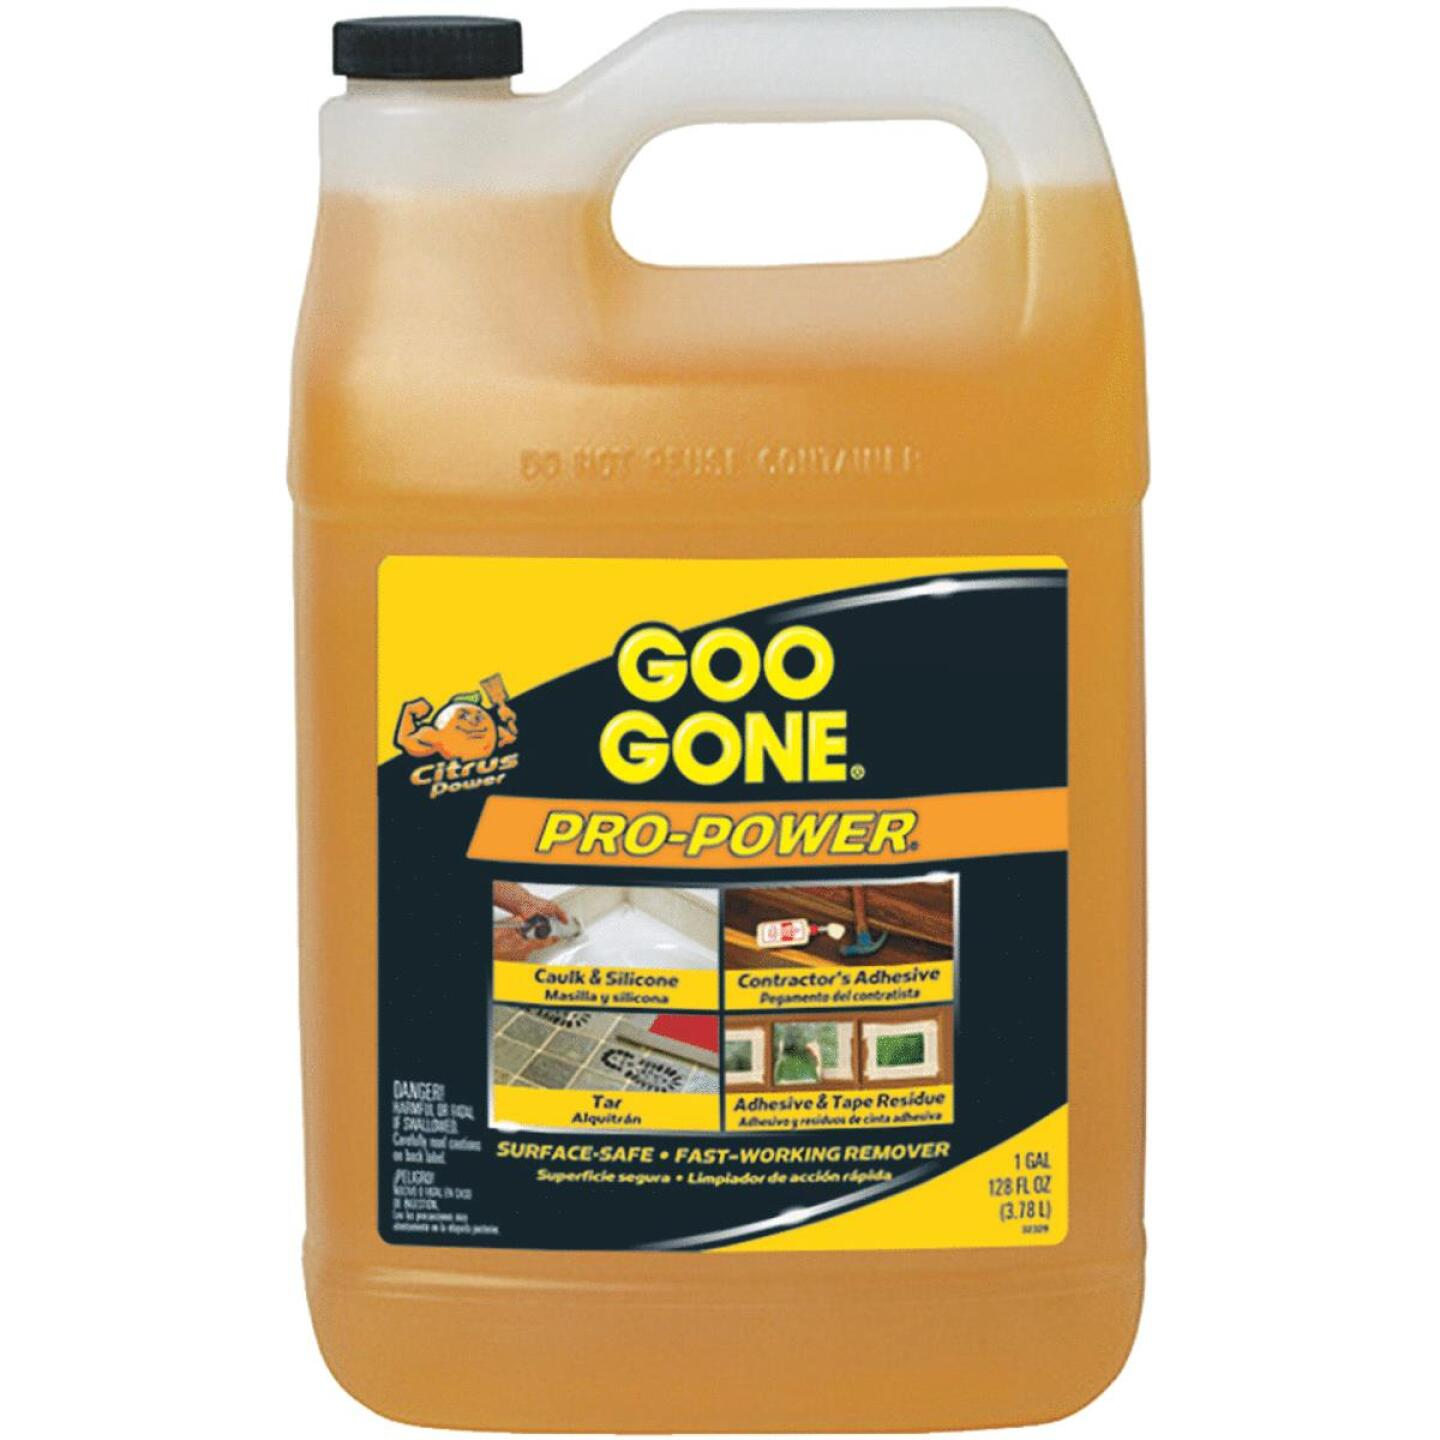 Goo Gone 1 Gal. Pro-Power Adhesive Remover Image 27